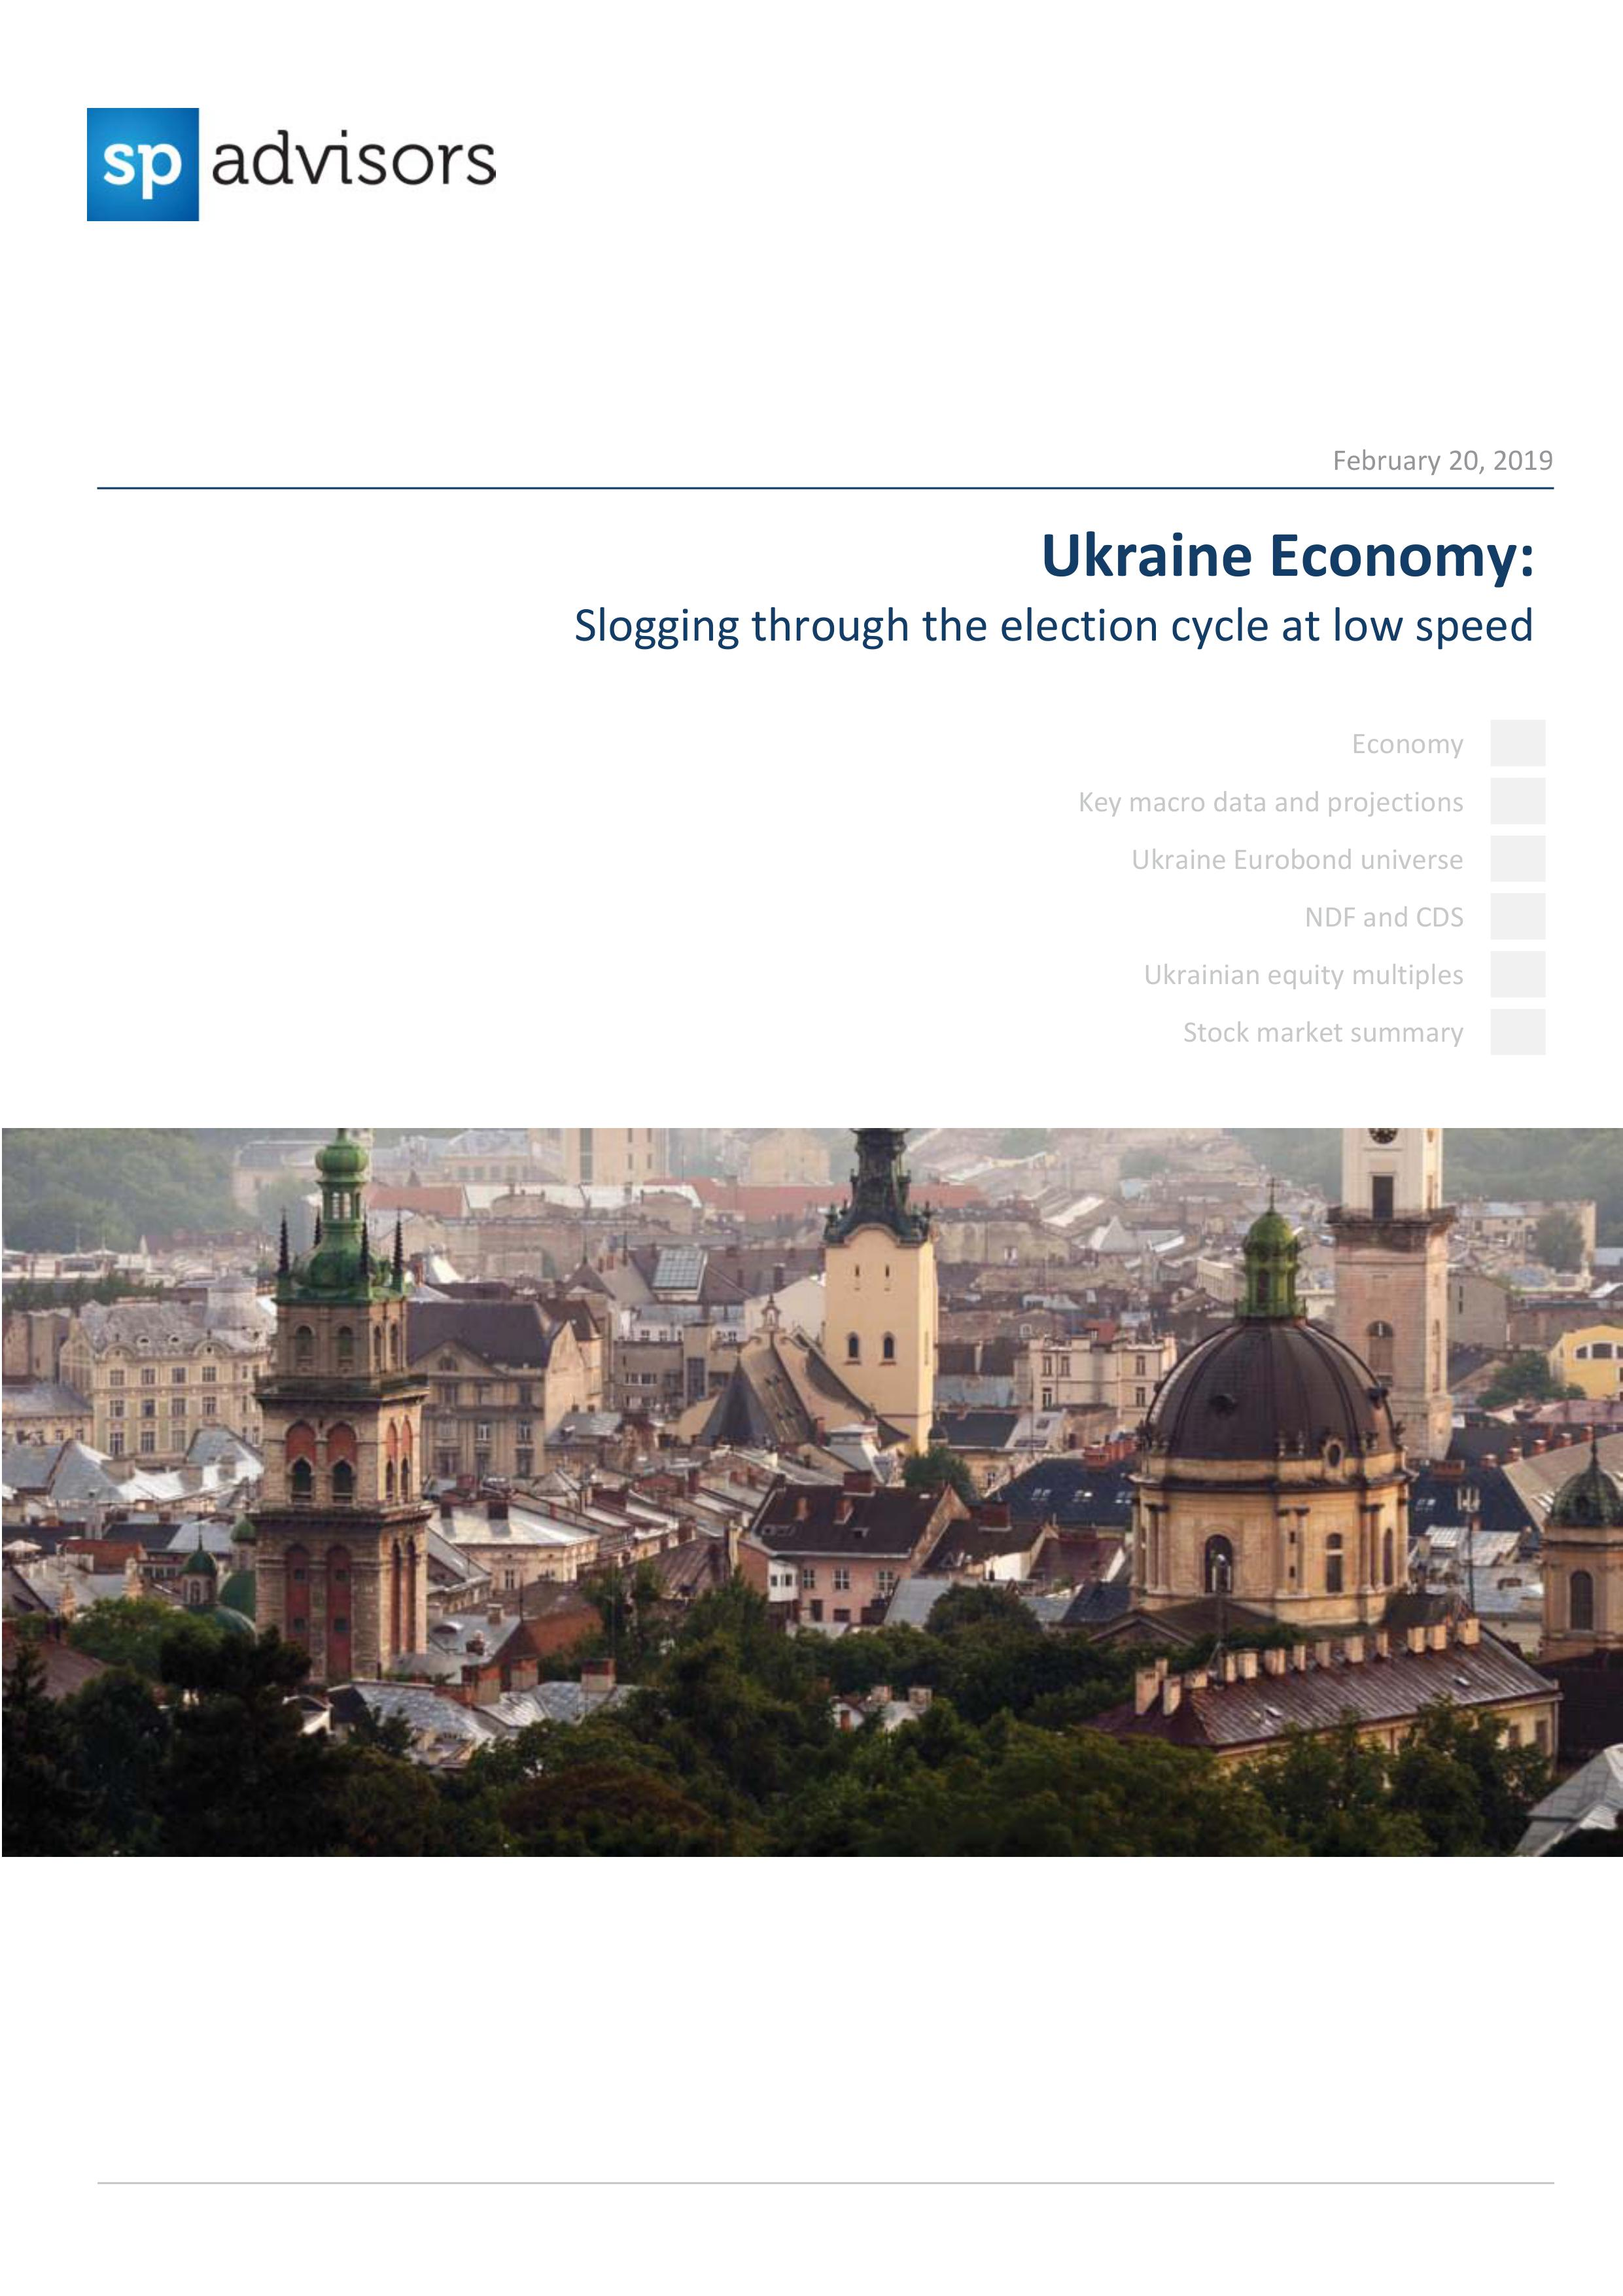 Ukraine Economy: Slogging through the election cycle at low speed